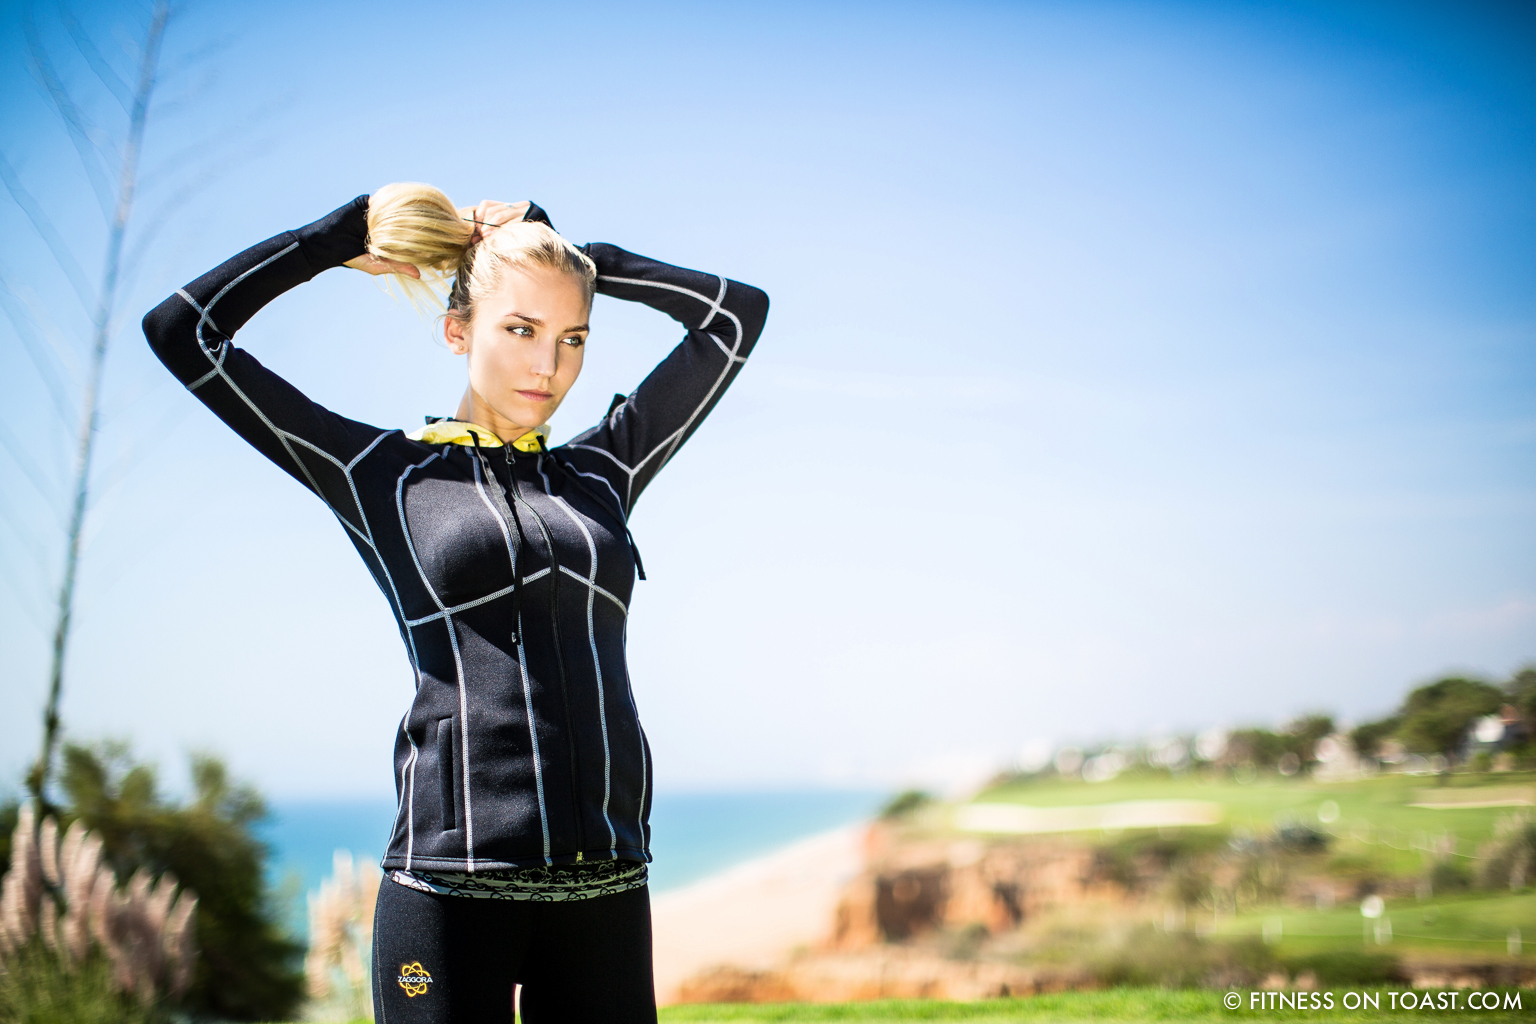 Portugal Algarve Zaggora Running Sports Fitness Girl Faya Fitness On Toast Run Val De Lobo Royal Golf Course Blog-4